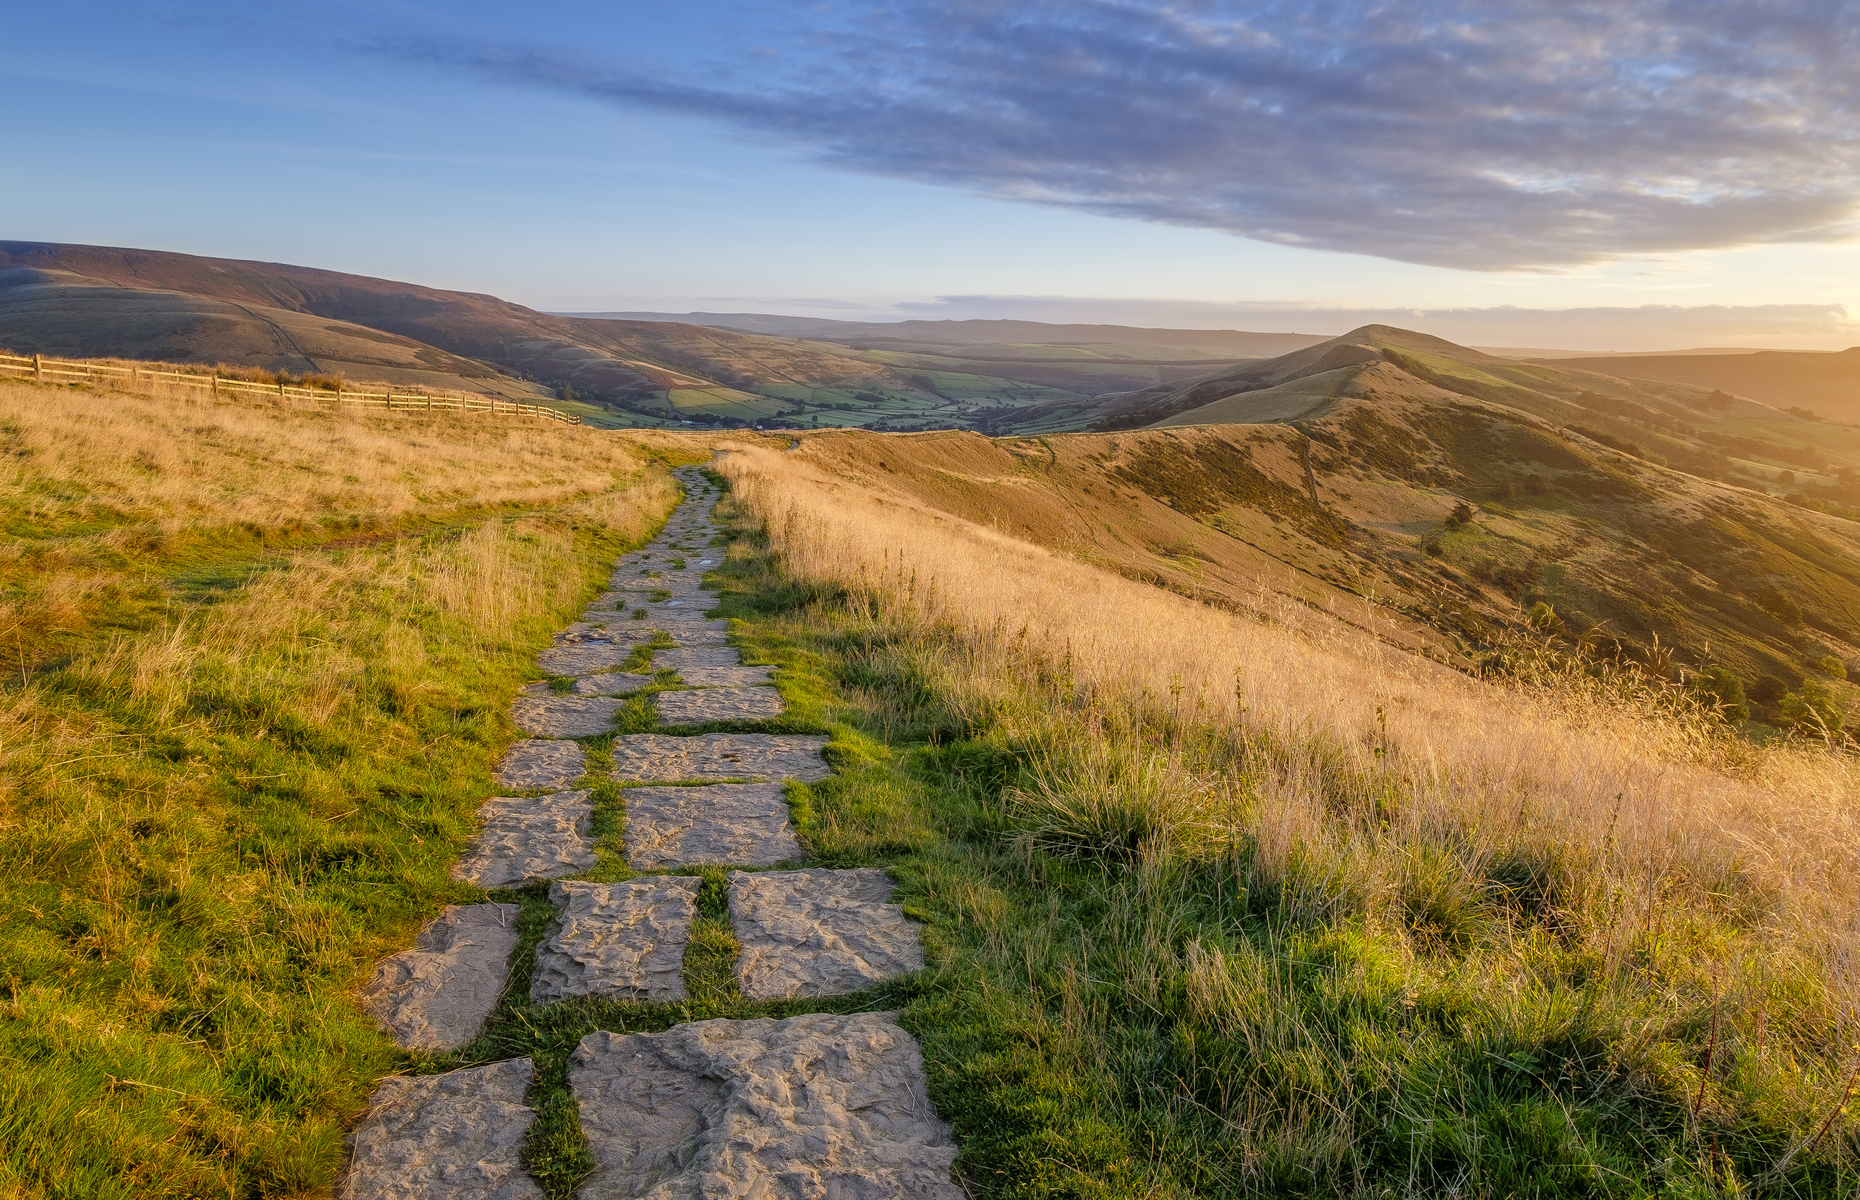 Stone path in the Peak District (Image: Richard Bowden/Shutterstock)